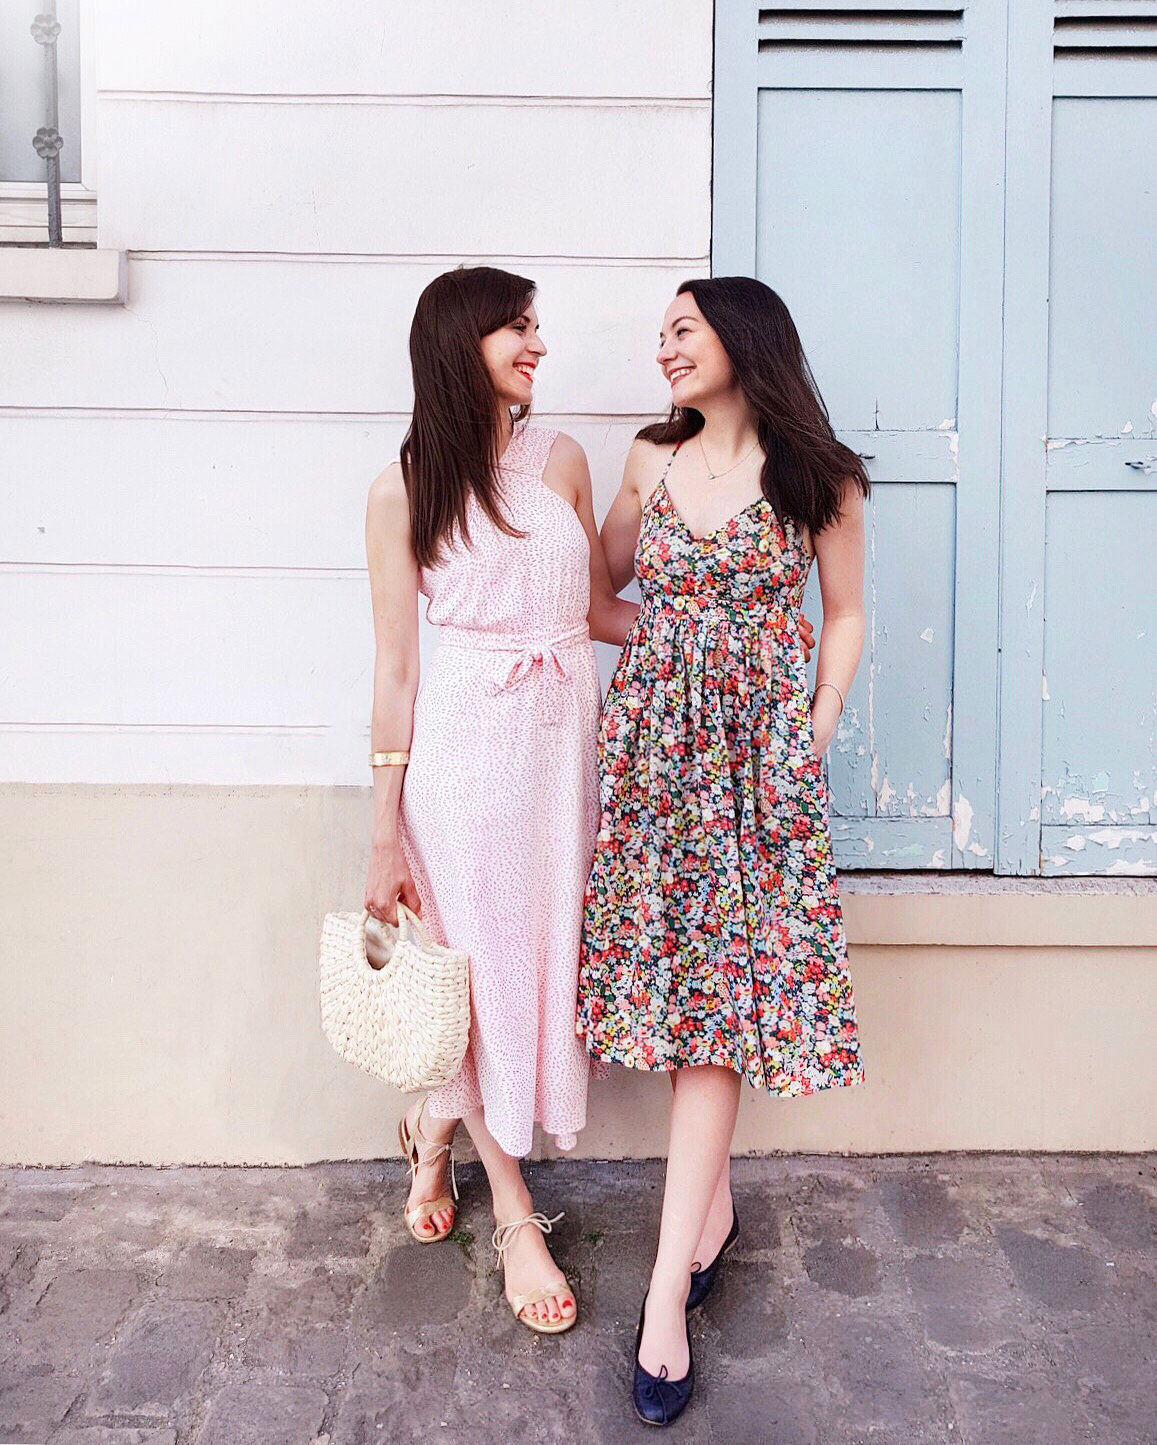 Blog-Mode-And-The-City-Lifestyle-Cinq-Petites-Choses-222-carly-college-prepster